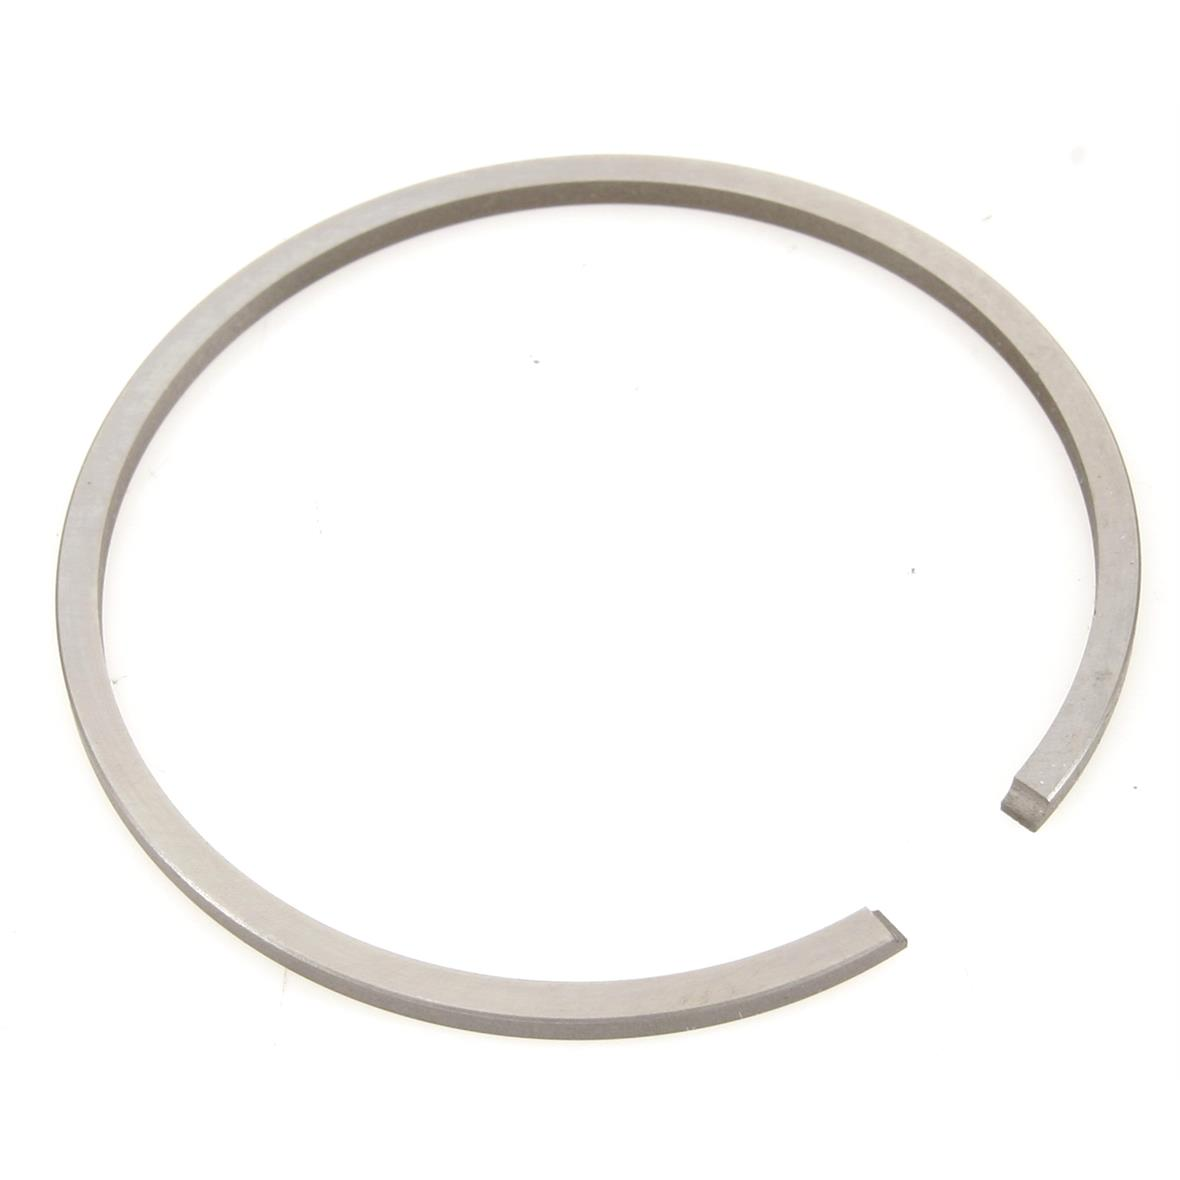 Product Image for 'Piston Ring METEOR, 1.o/s upper/lowerTitle'